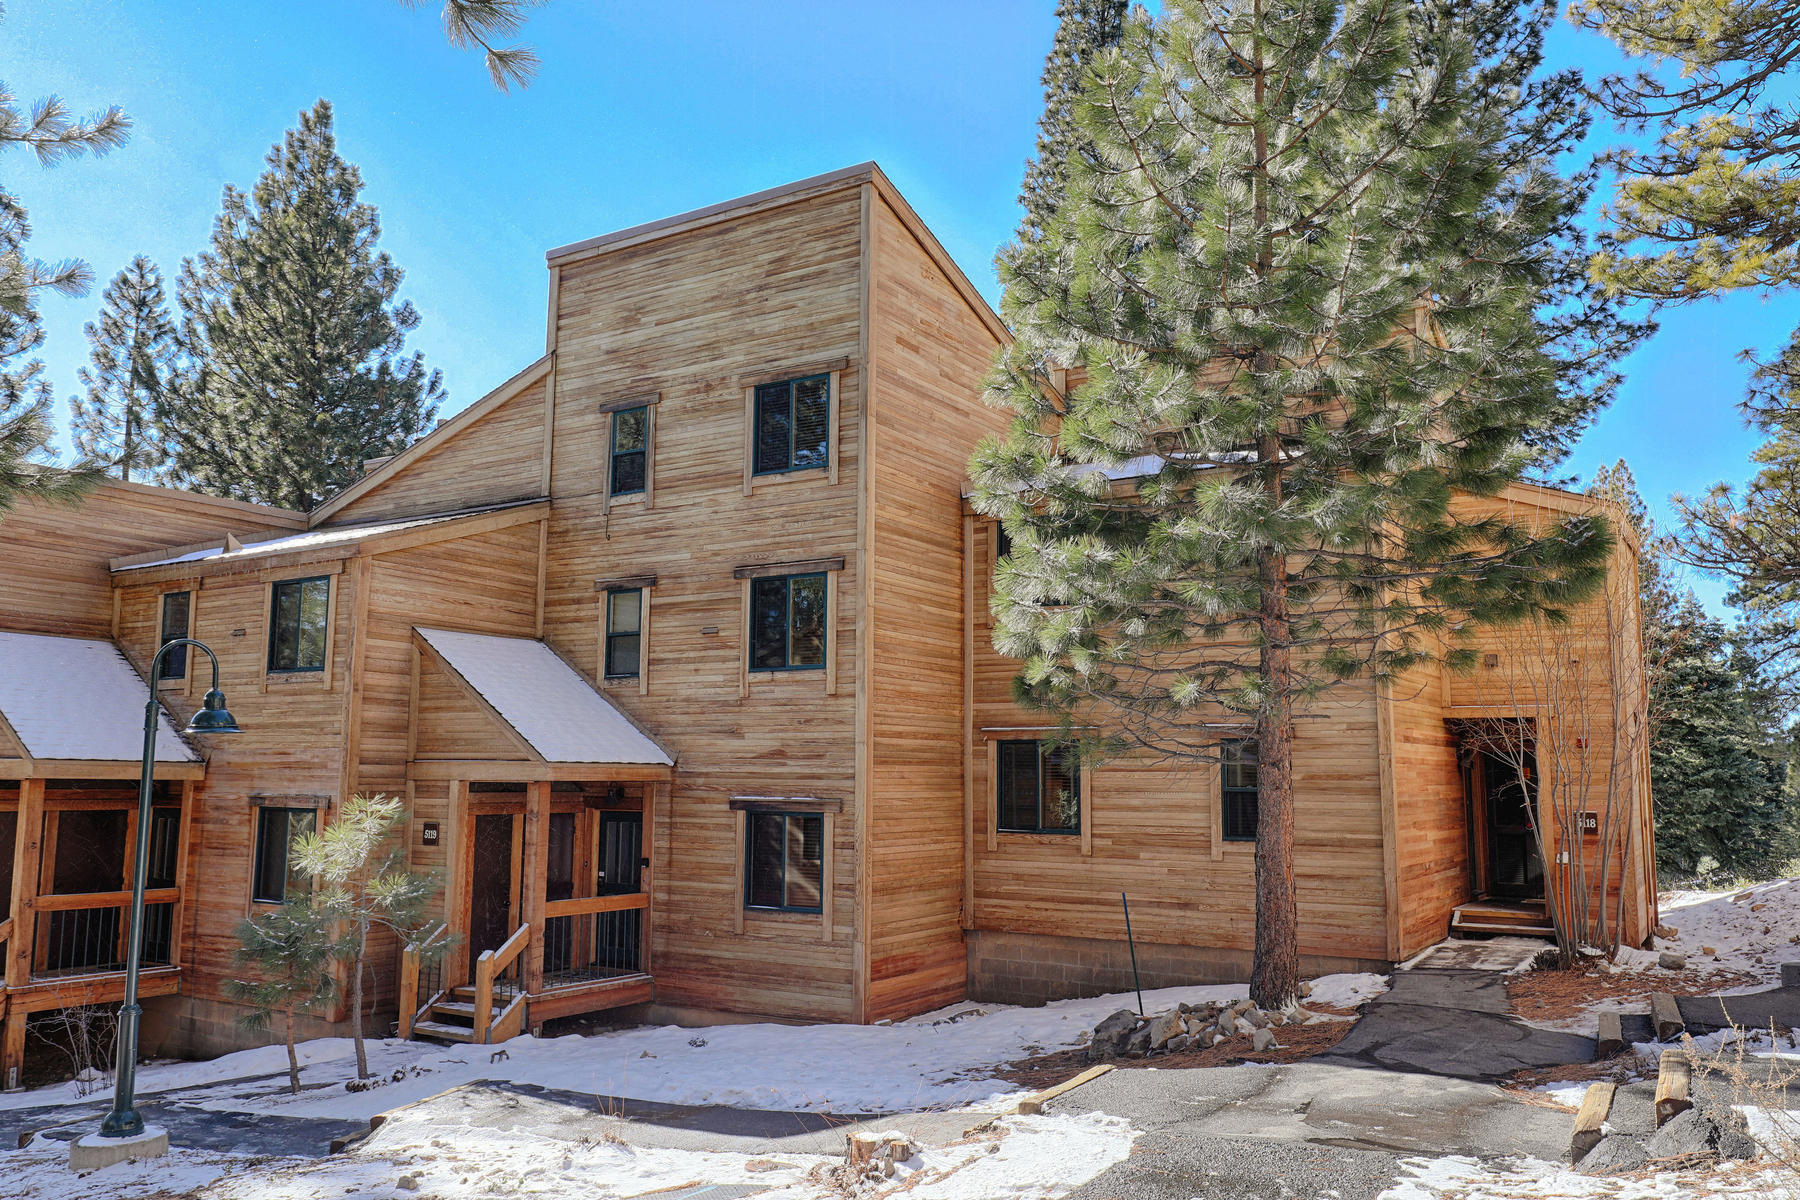 Condominiums for Active at 5118 Gold Bend Truckee California 96160 5118 Gold Bend Truckee, California 96160 United States